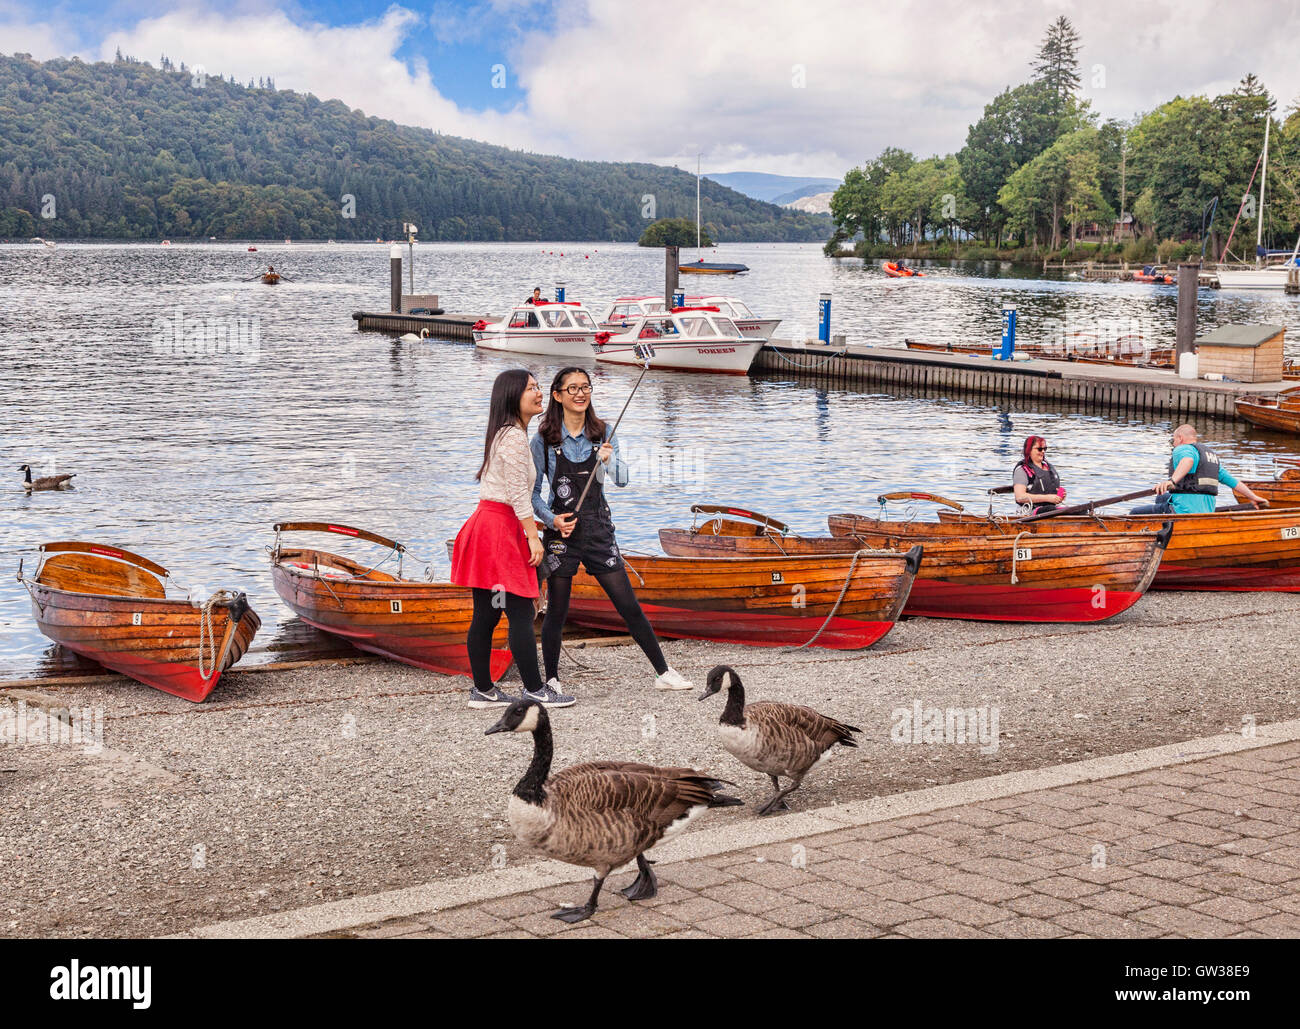 Two Asian girls taking photos with a selfie stick on the shores of Lake Windermere, Cumbria, England, UK - Stock Image